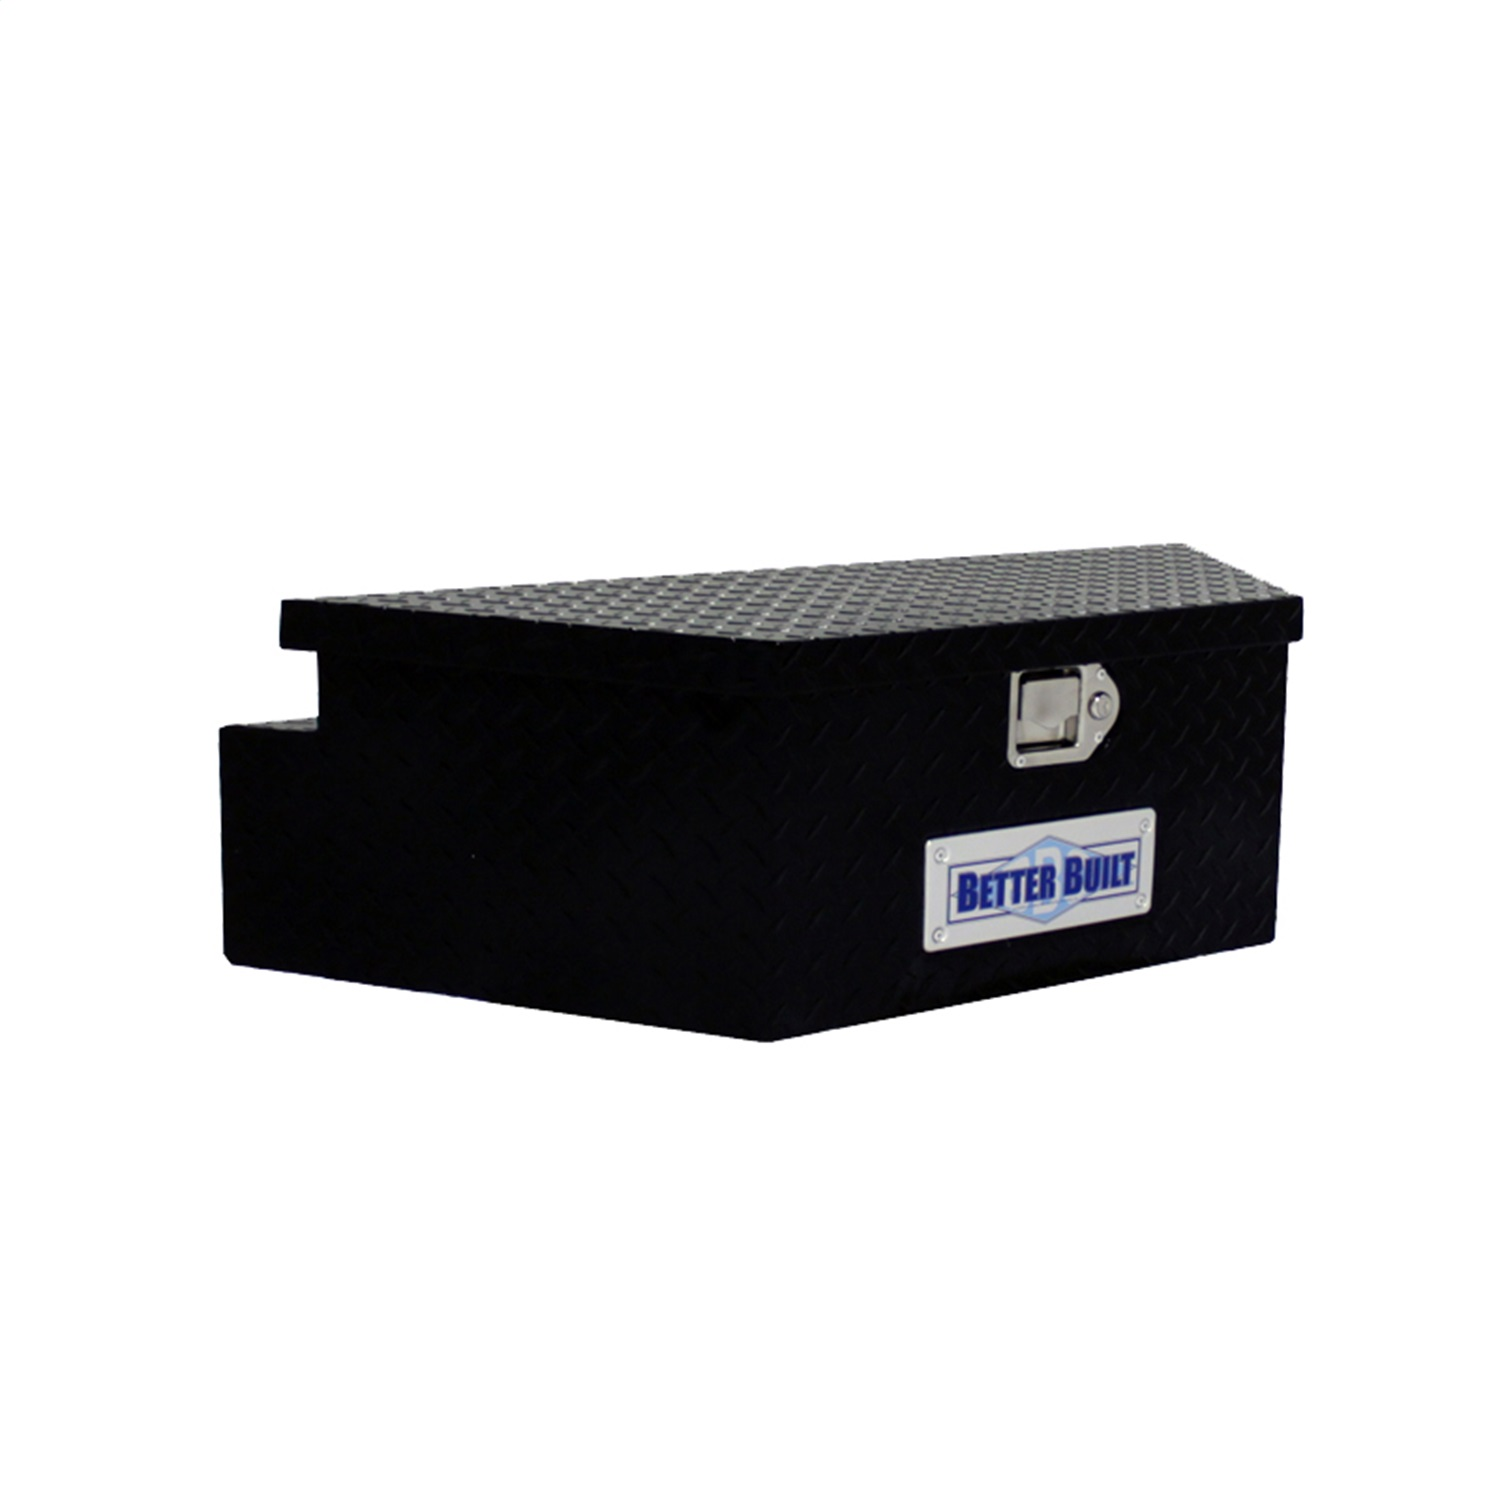 Better Built 66212321 Utility Trailer Tongue Tool Box; BLACK; Wide; V Shaped 39x16.5x12in.